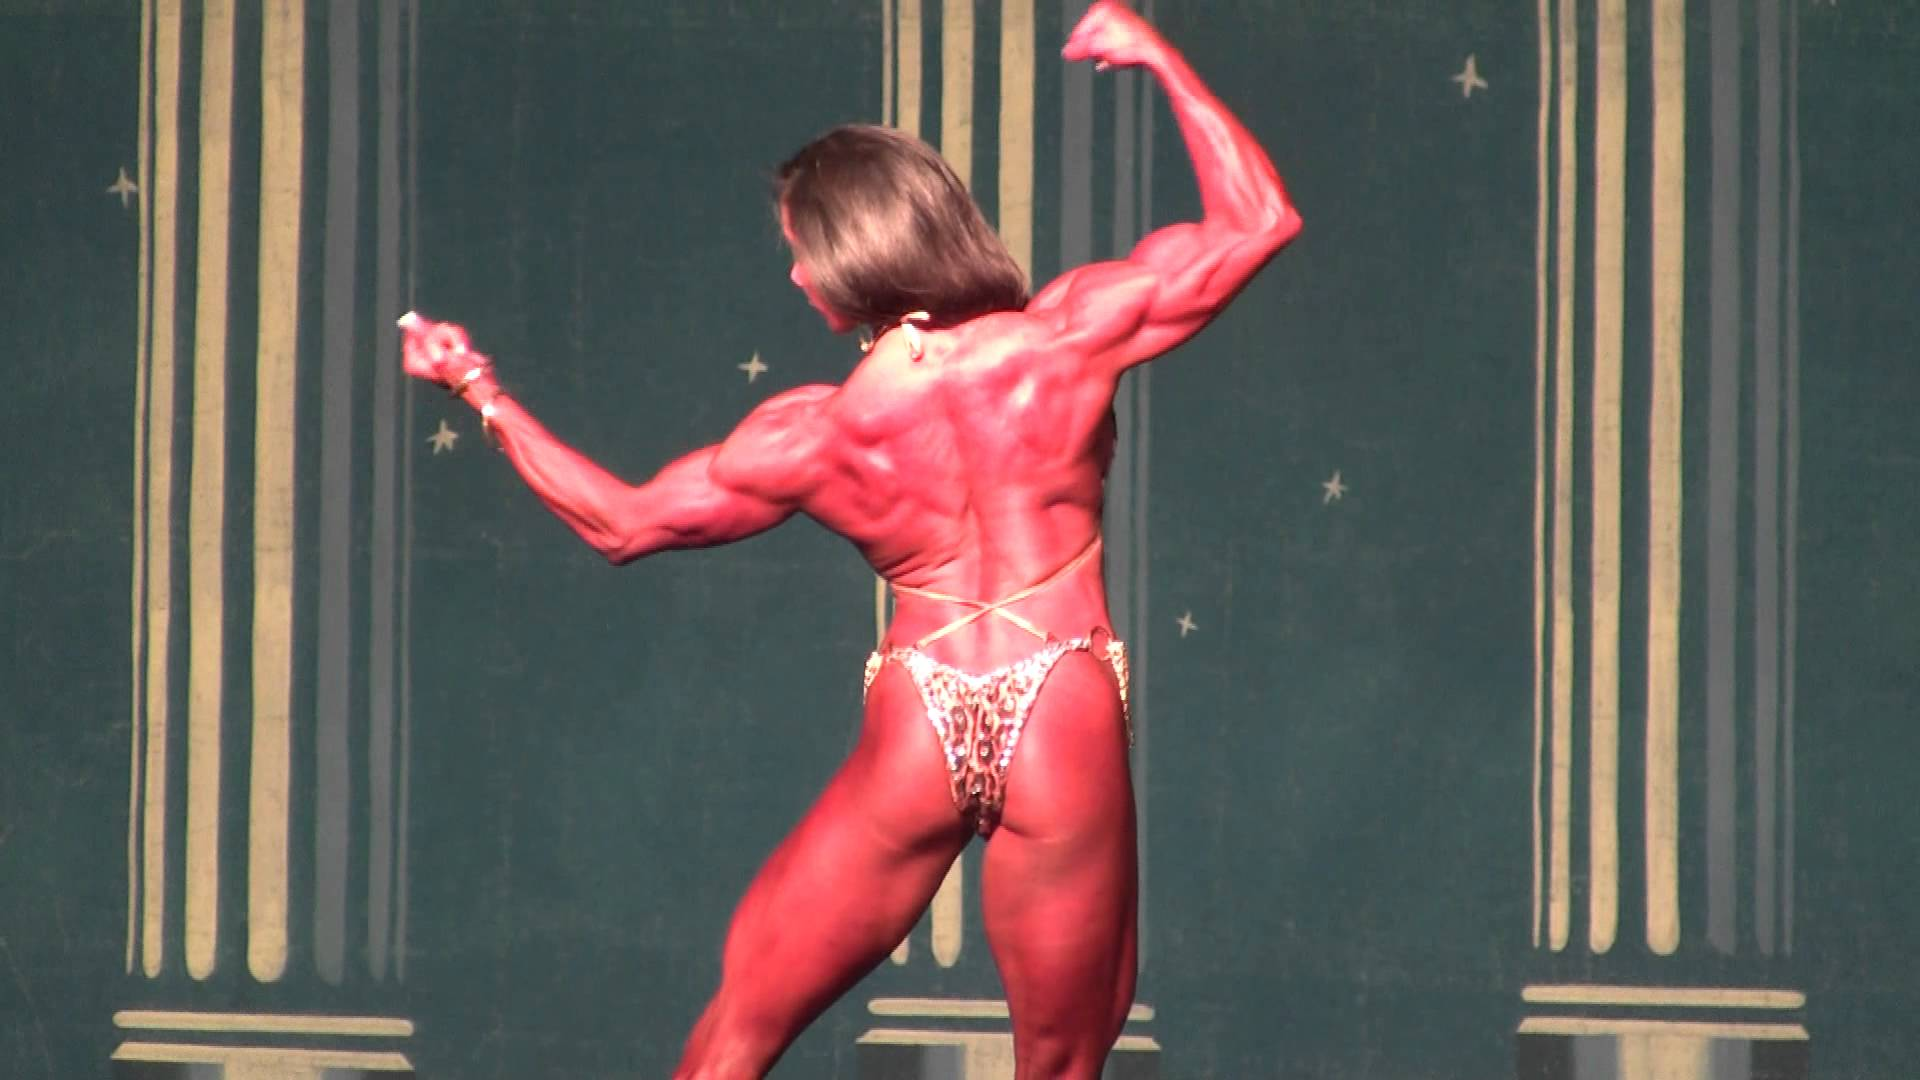 Marina Lopez – Europa Bodybuilding Show Of Champions 2012